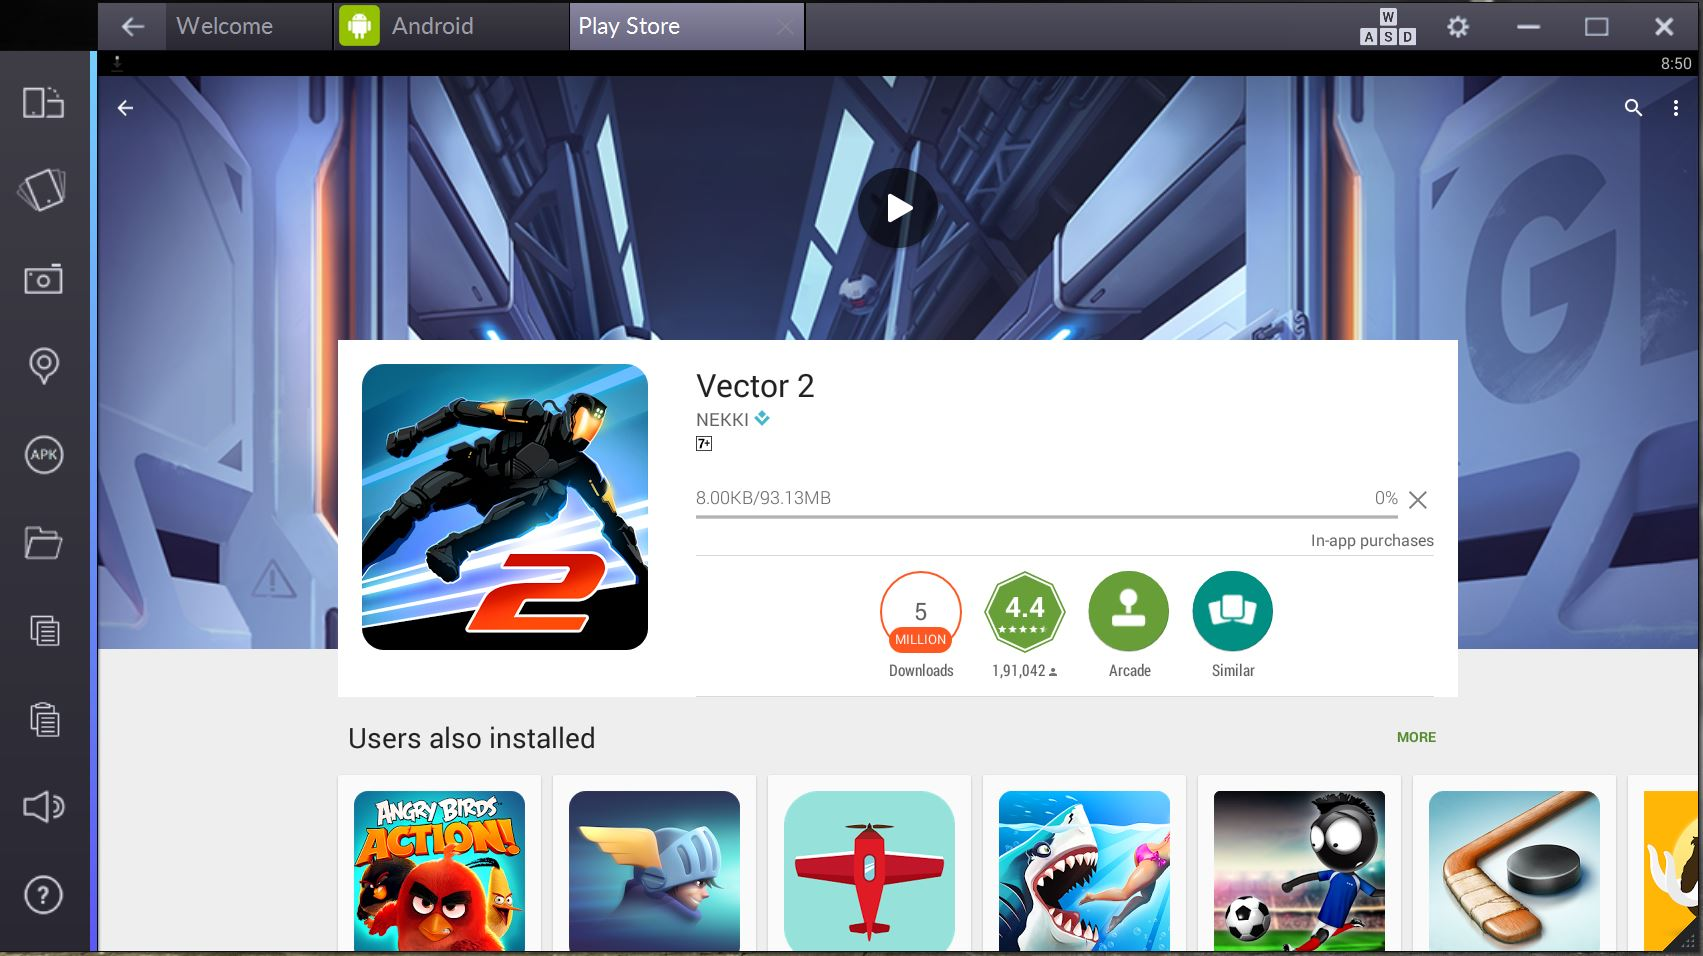 vector 2 for pc computer bluestacks